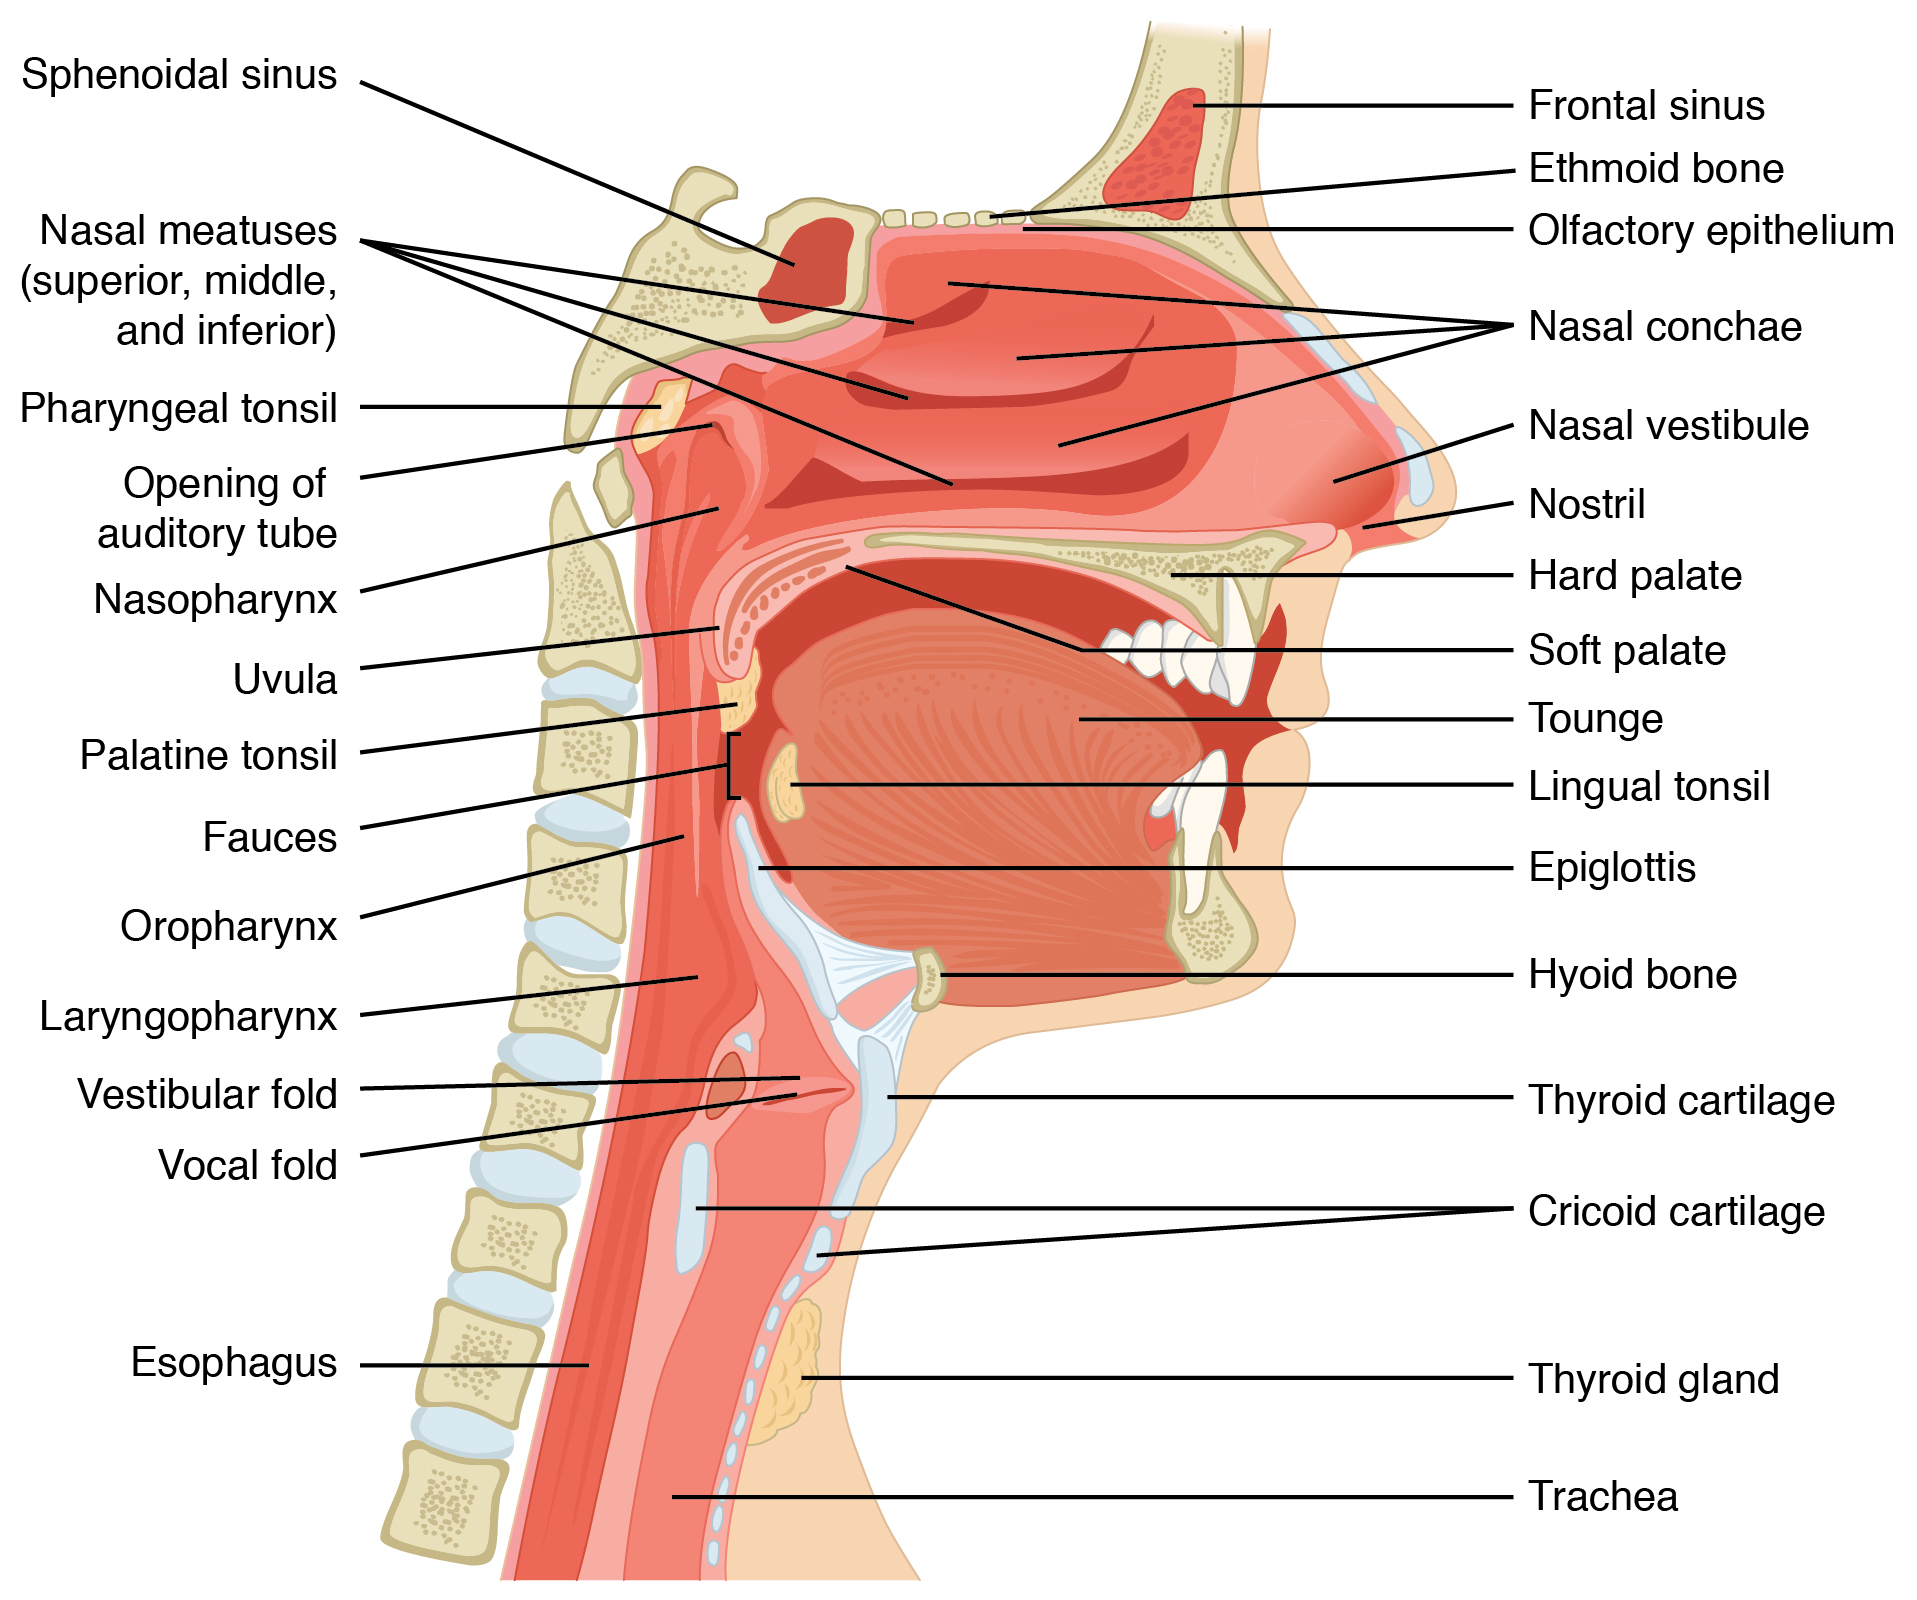 Diagram of the upper airway. Image description available.